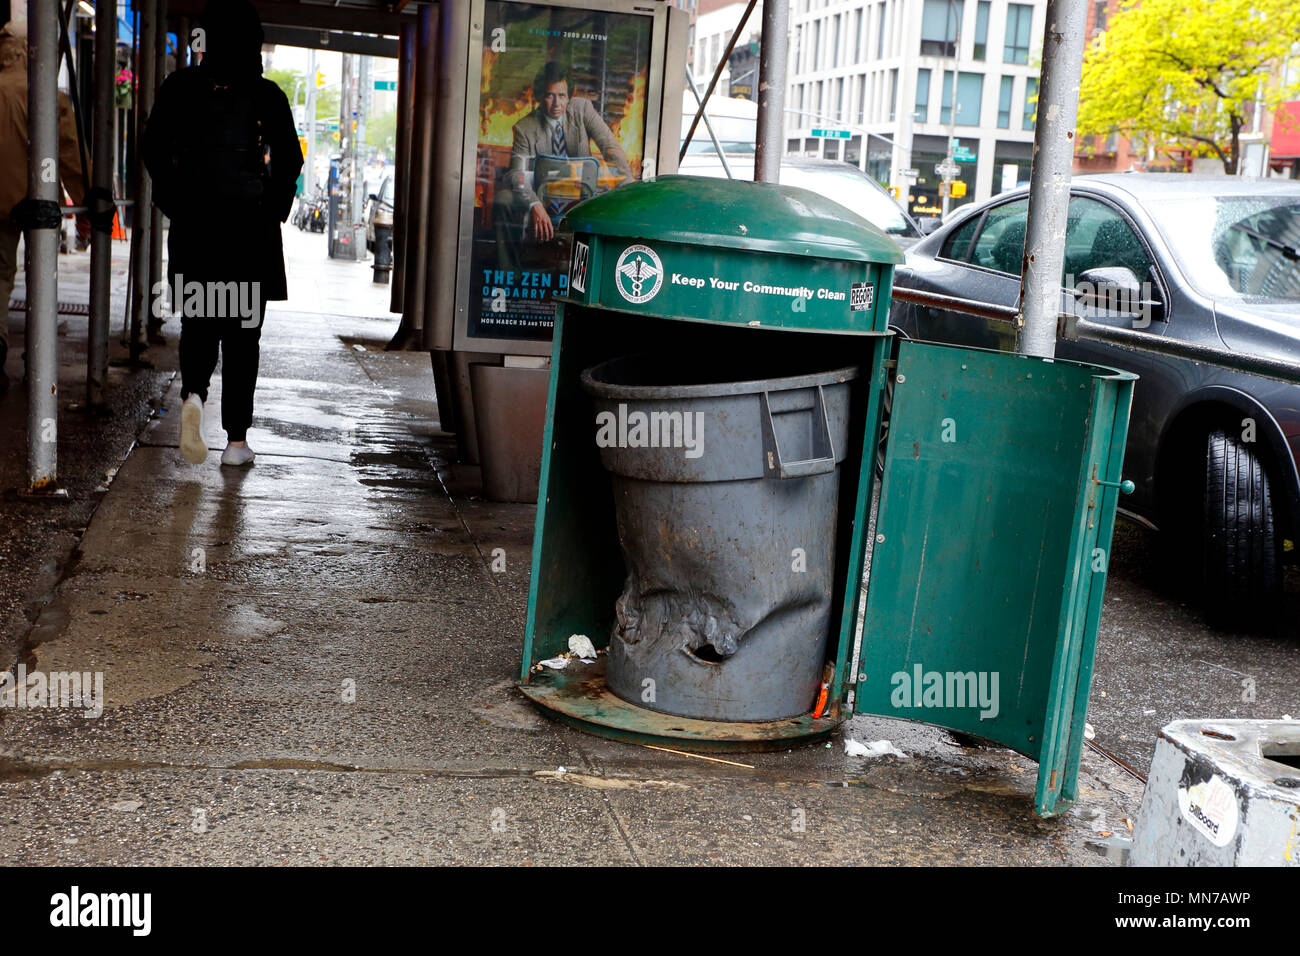 A partially melted plastic garbage collection bin inside a NYC garbage can - Stock Image